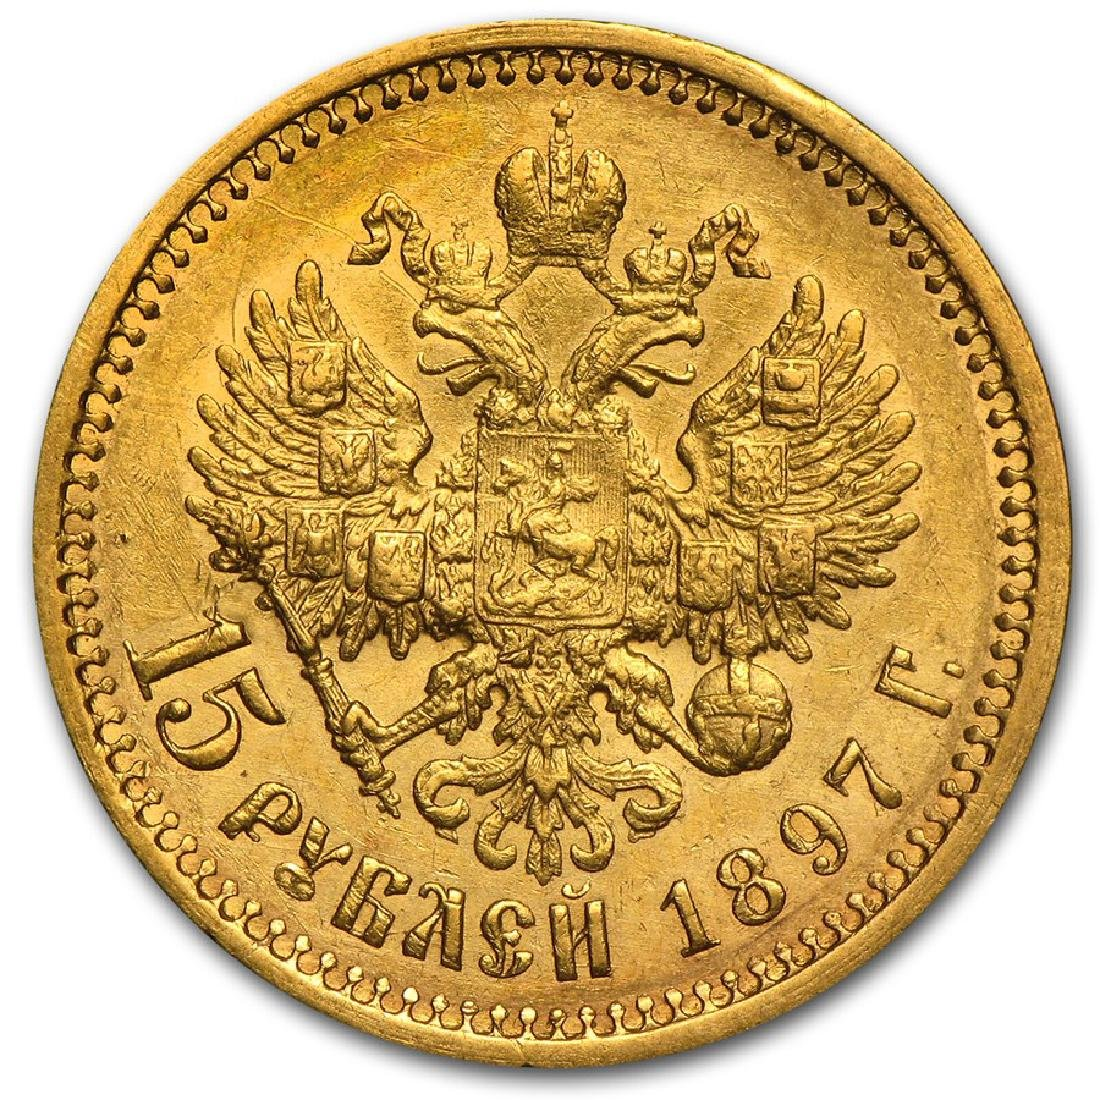 1897 Russia 15 Roubles Gold Coin - 2